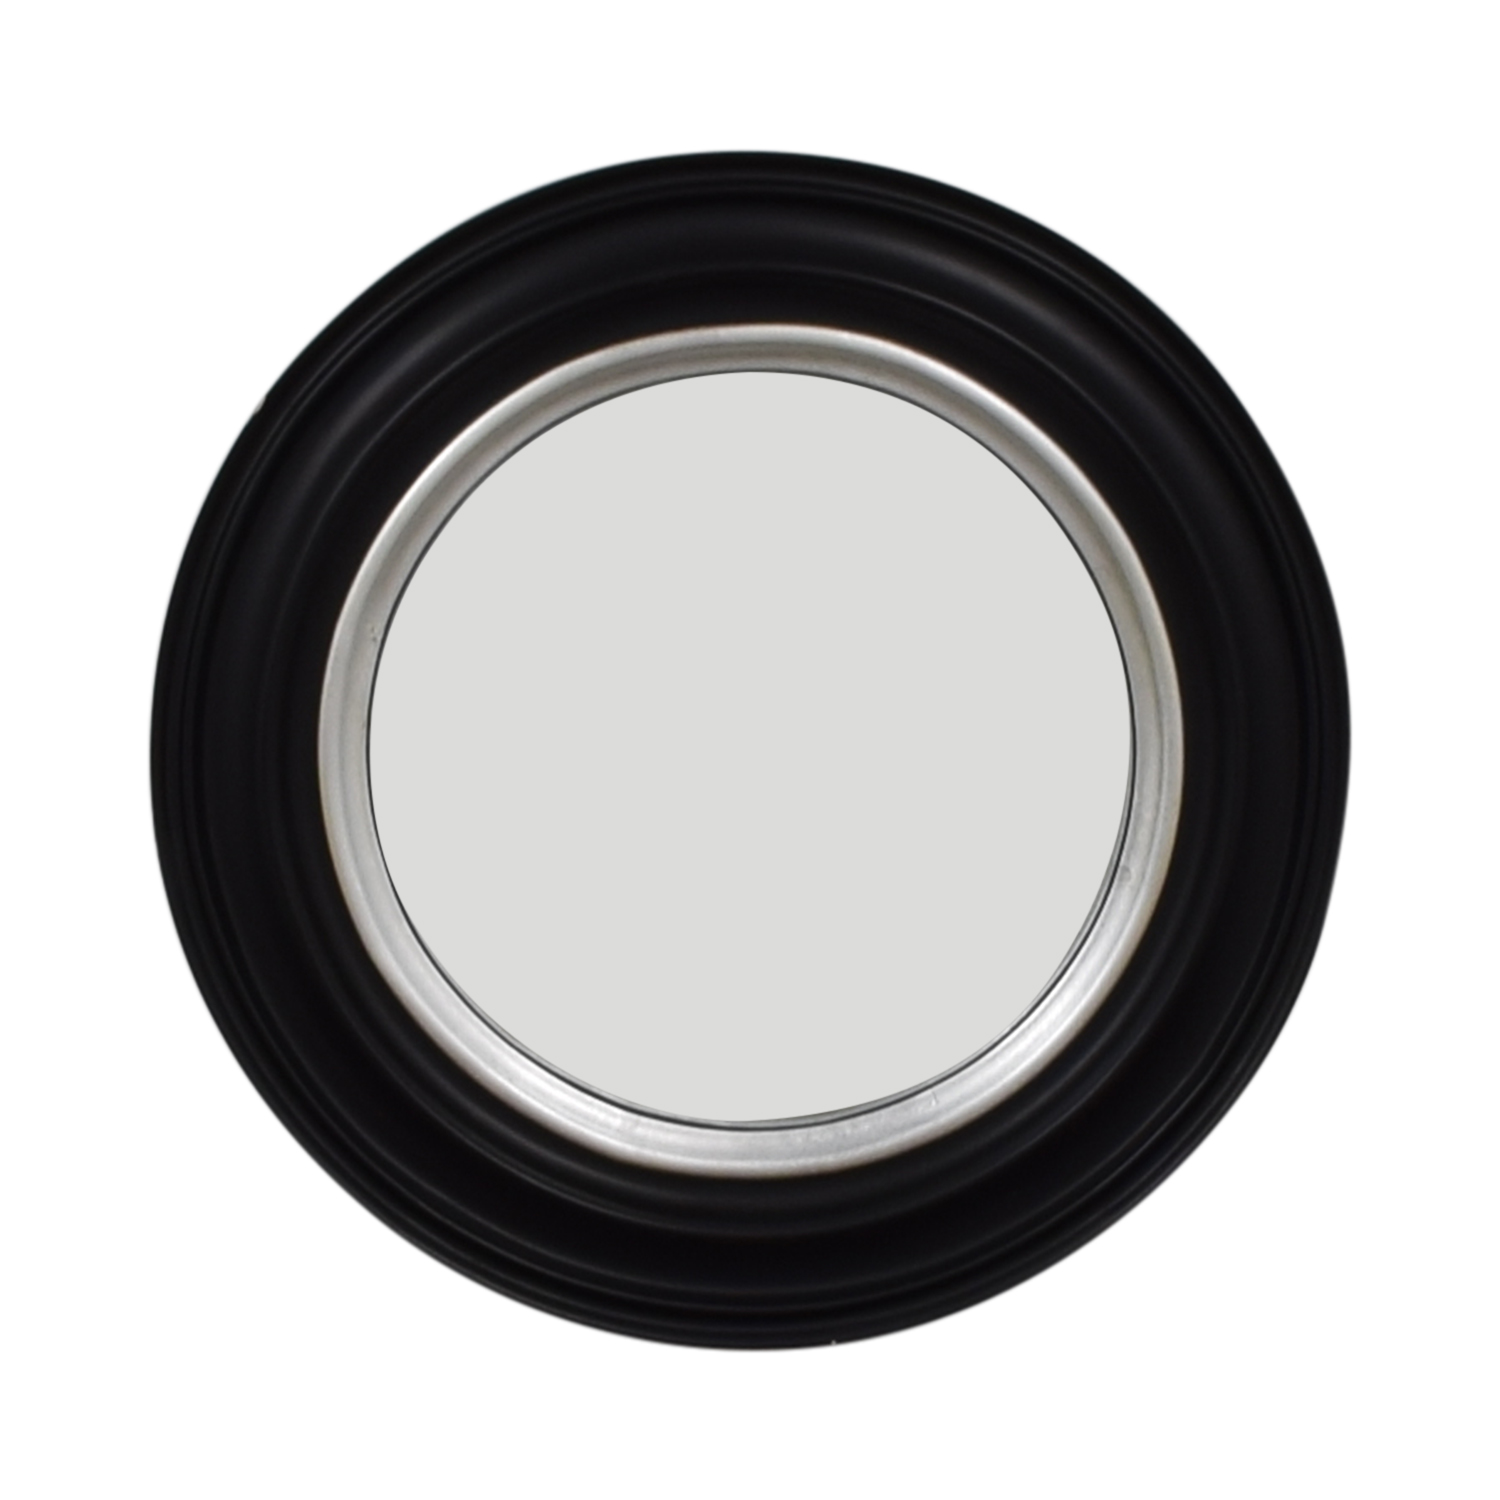 buy Ballard Design Bullseye Round Black Wall Mirror Ballard Design Mirrors